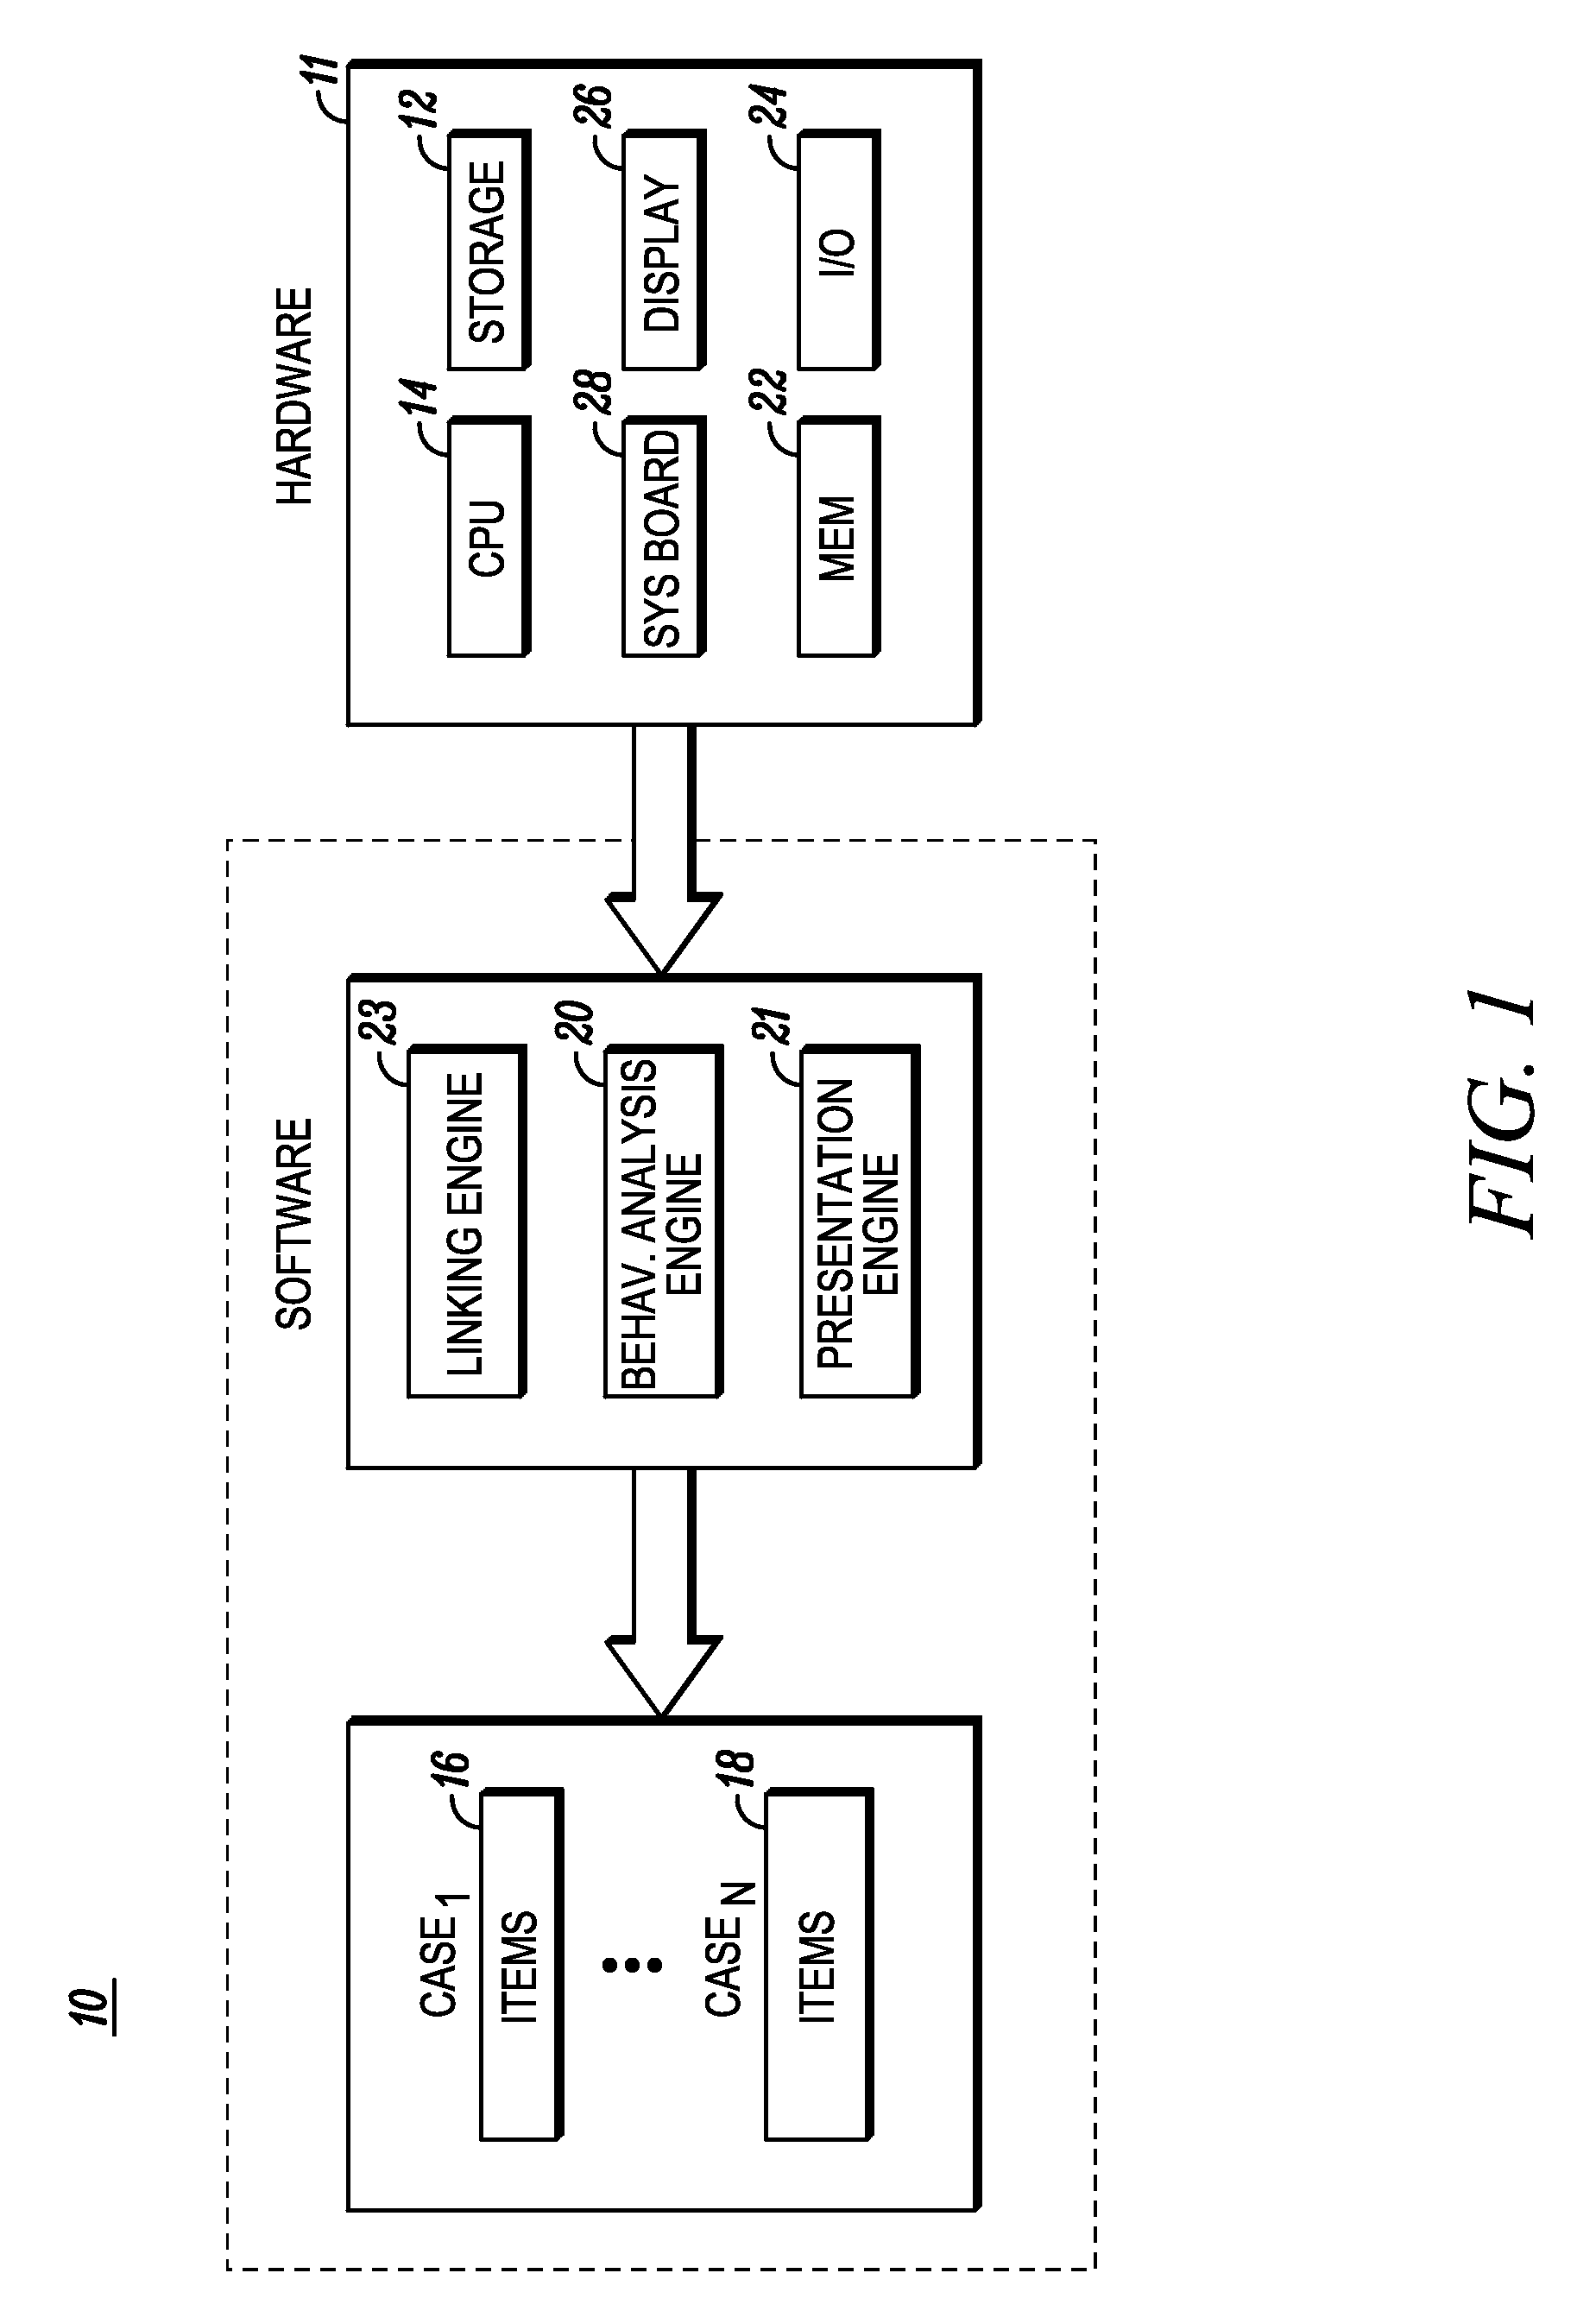 patent us20070112713 method and apparatus for profiling a patent drawing